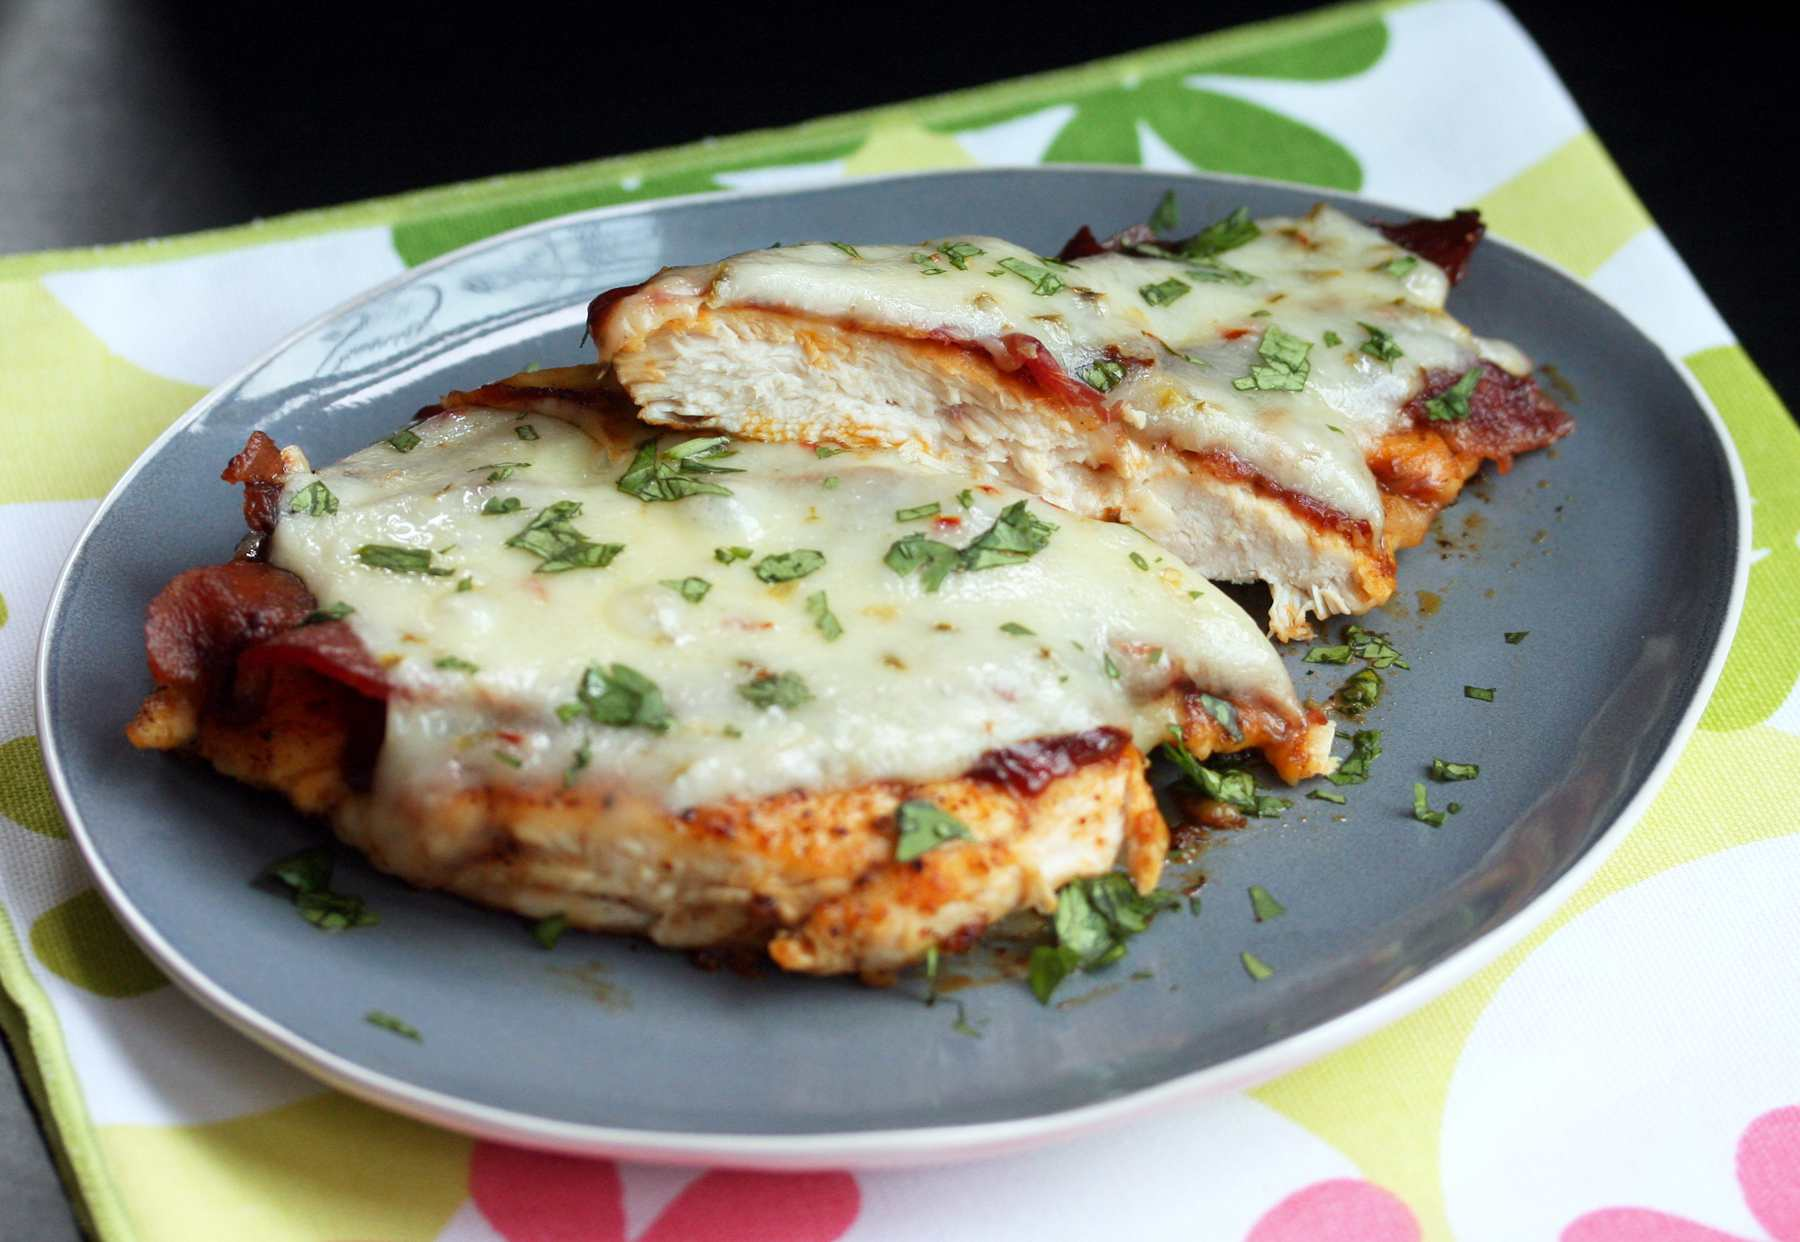 Chicken With Bacon and Pepper Jack Cheese